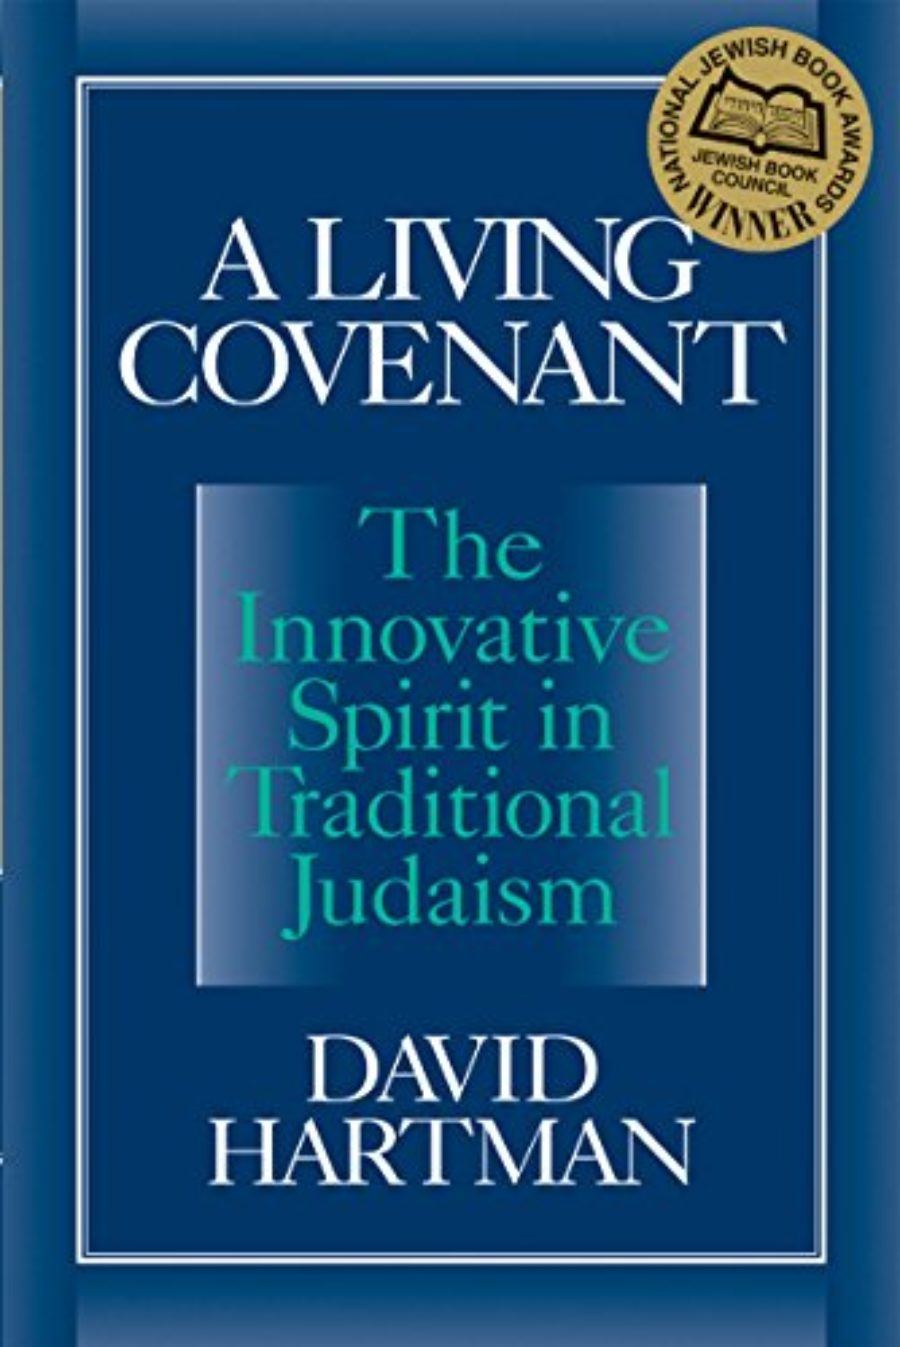 Cover of A Living Covenant: The Innovative Spirit in Traditional Judaism